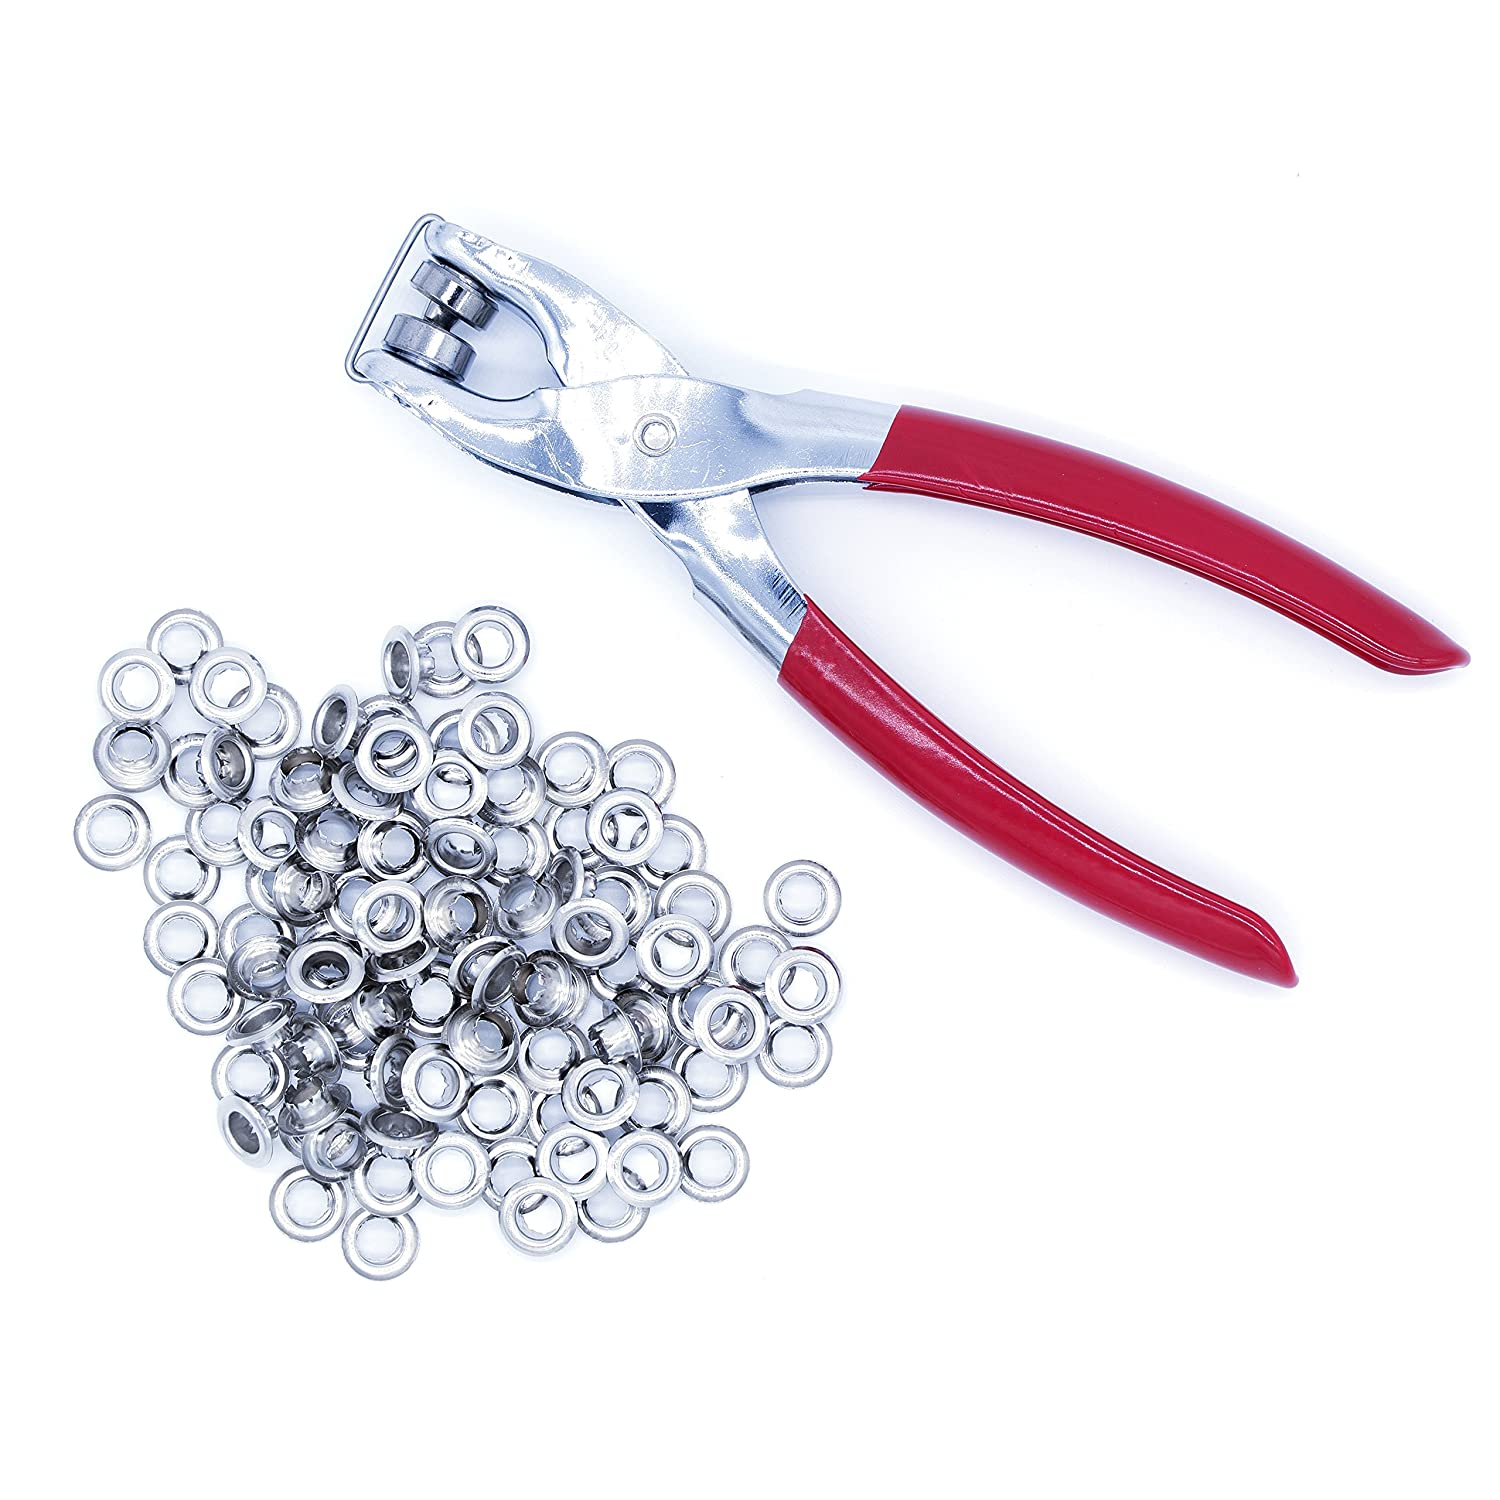 Ram-Pro 1/4 Grommet Eyelet Setter Plier, Hole Punch Tool Kit with 100 Silver Metal Eyelets Grommets 3012